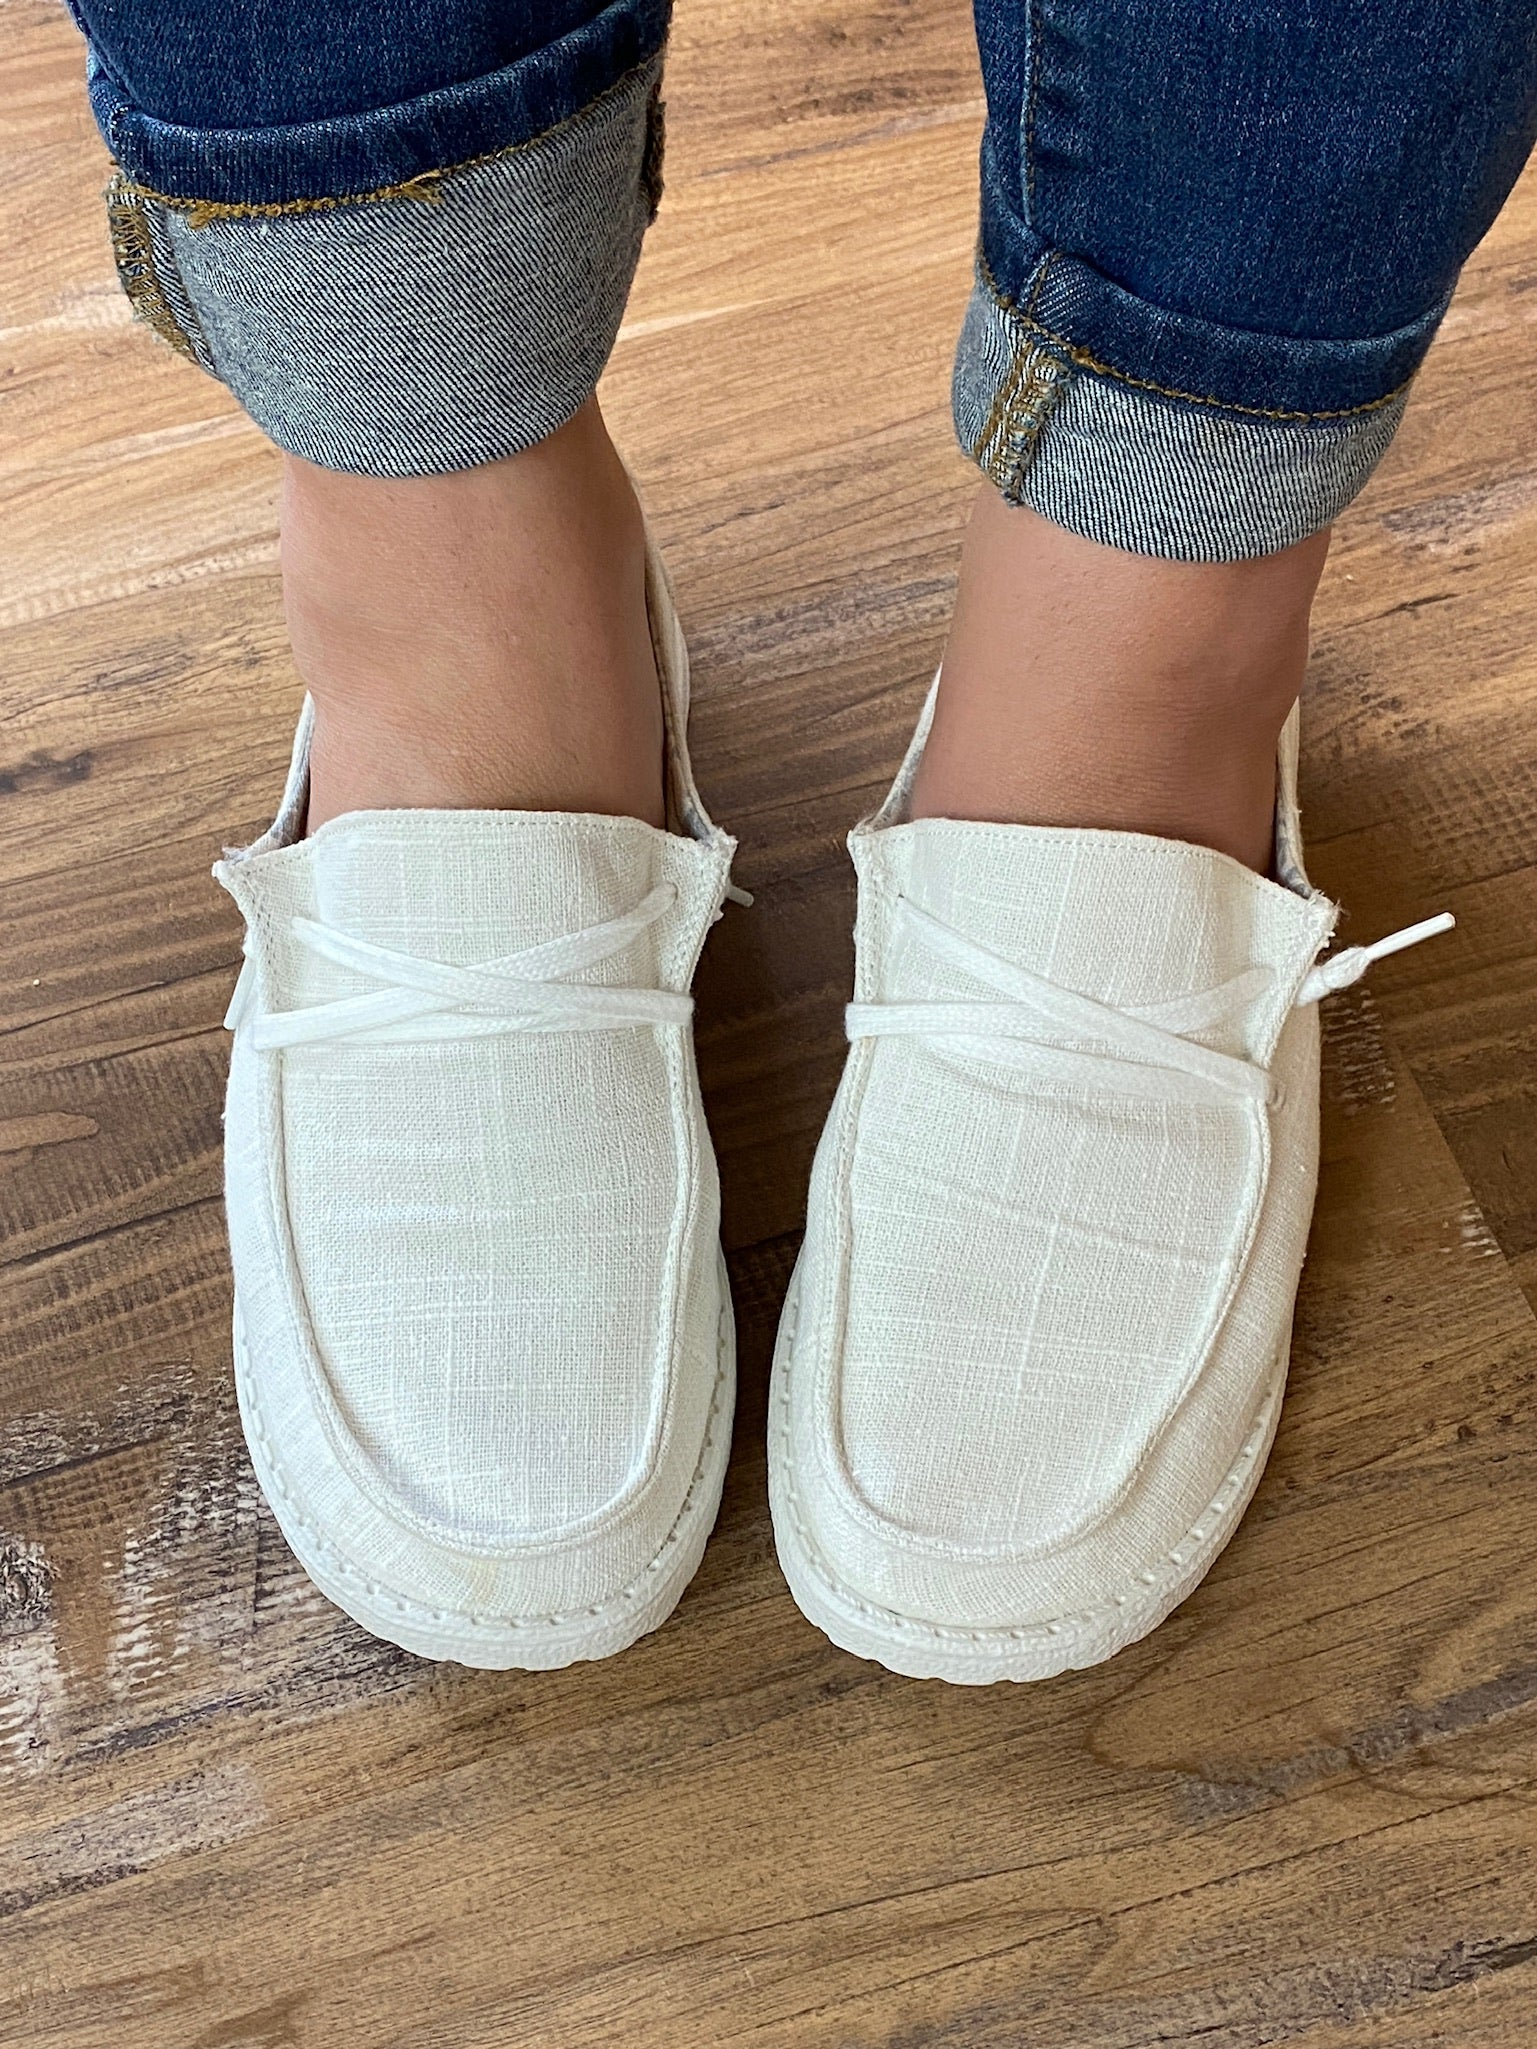 Gypsy Jazz Holly Sneakers - White